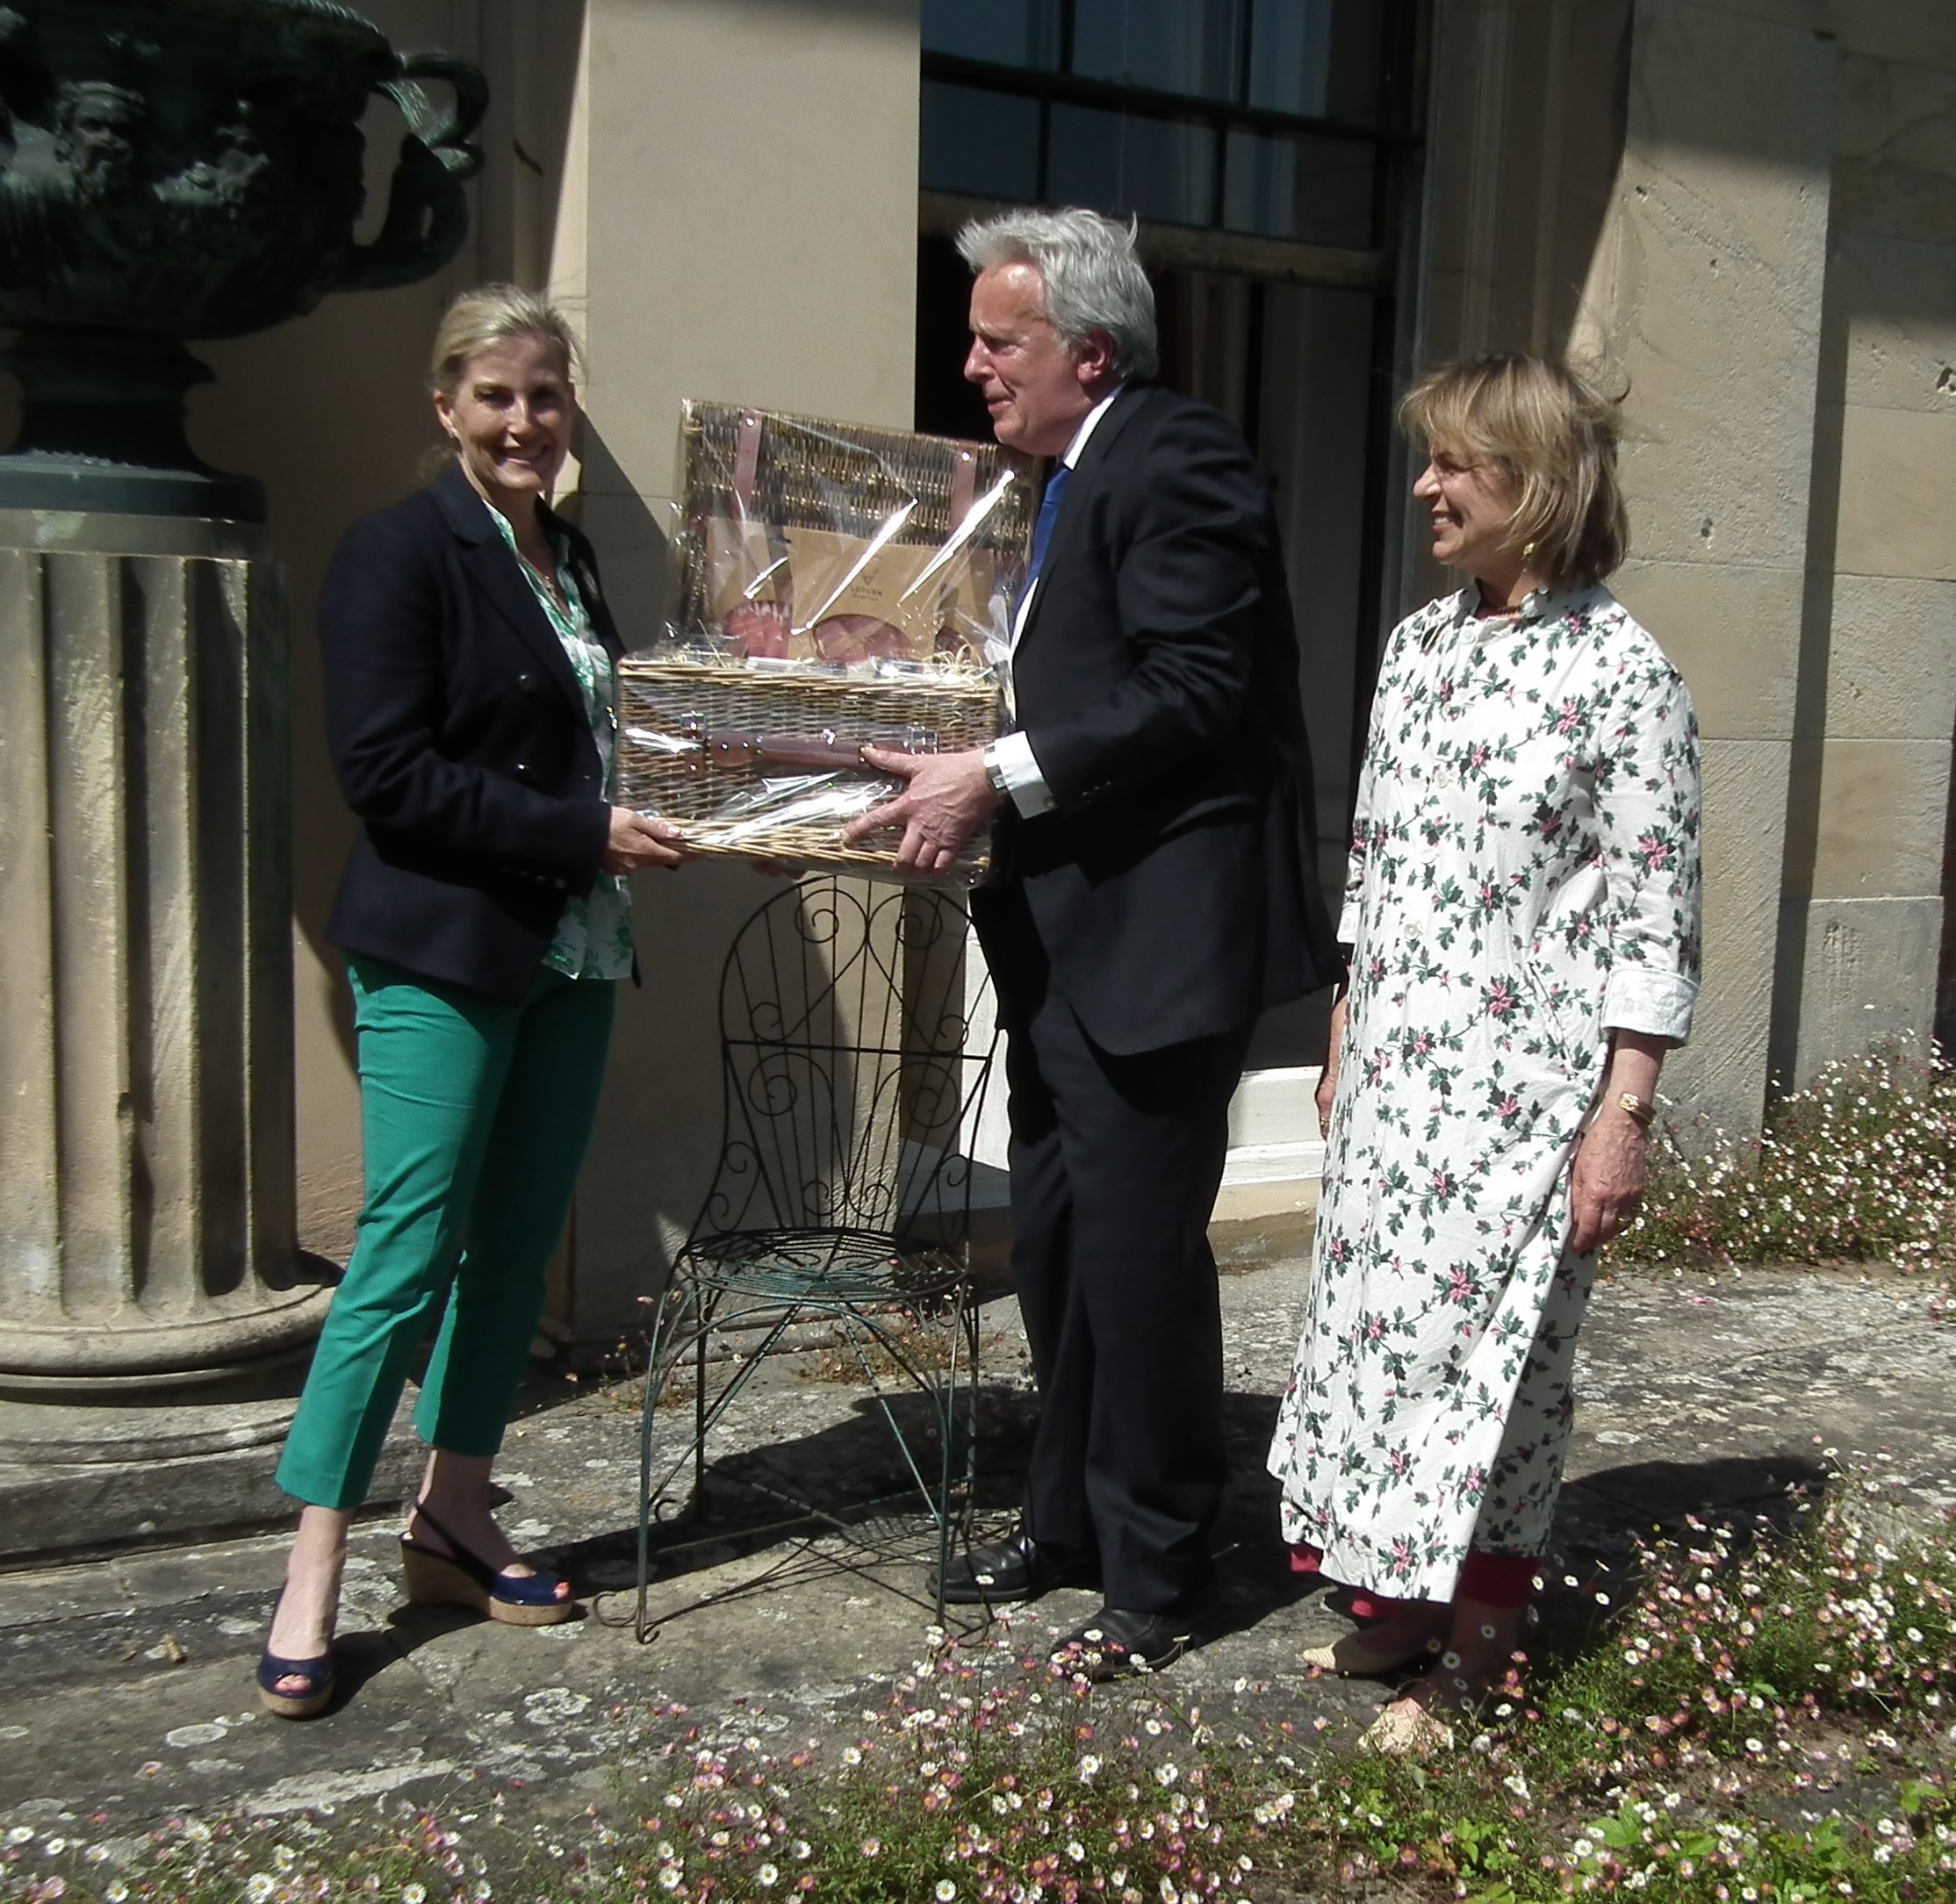 HRH The Countess of Wessex receives a Ludlow Farmshop hamper from Lord & Lady Plymouth